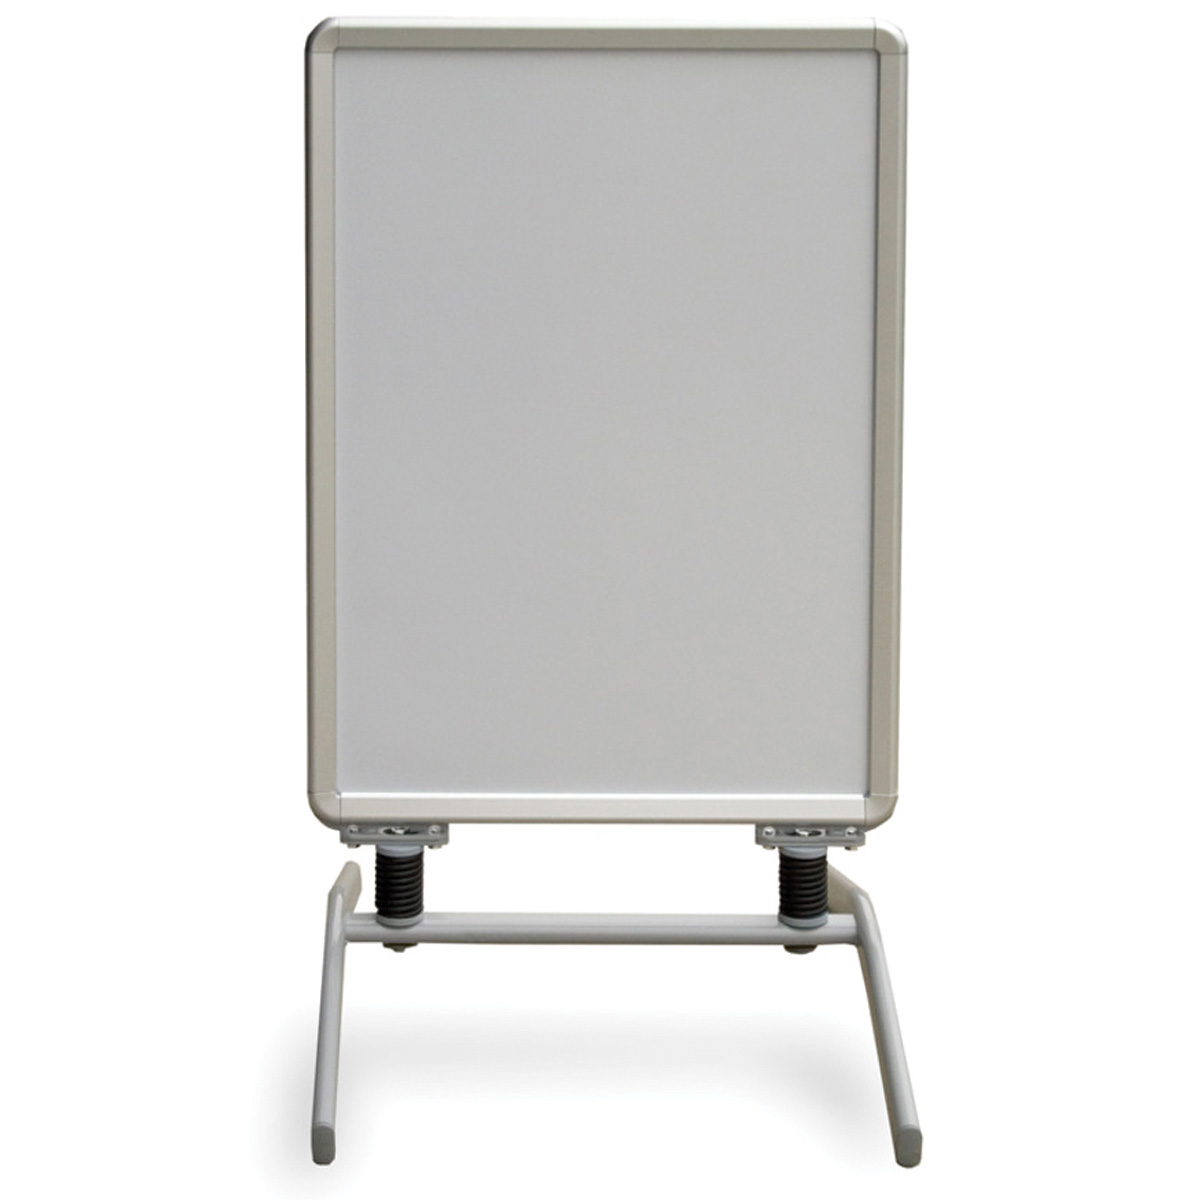 Display Stands - PrintEarly.com provides high quality and affordable ...